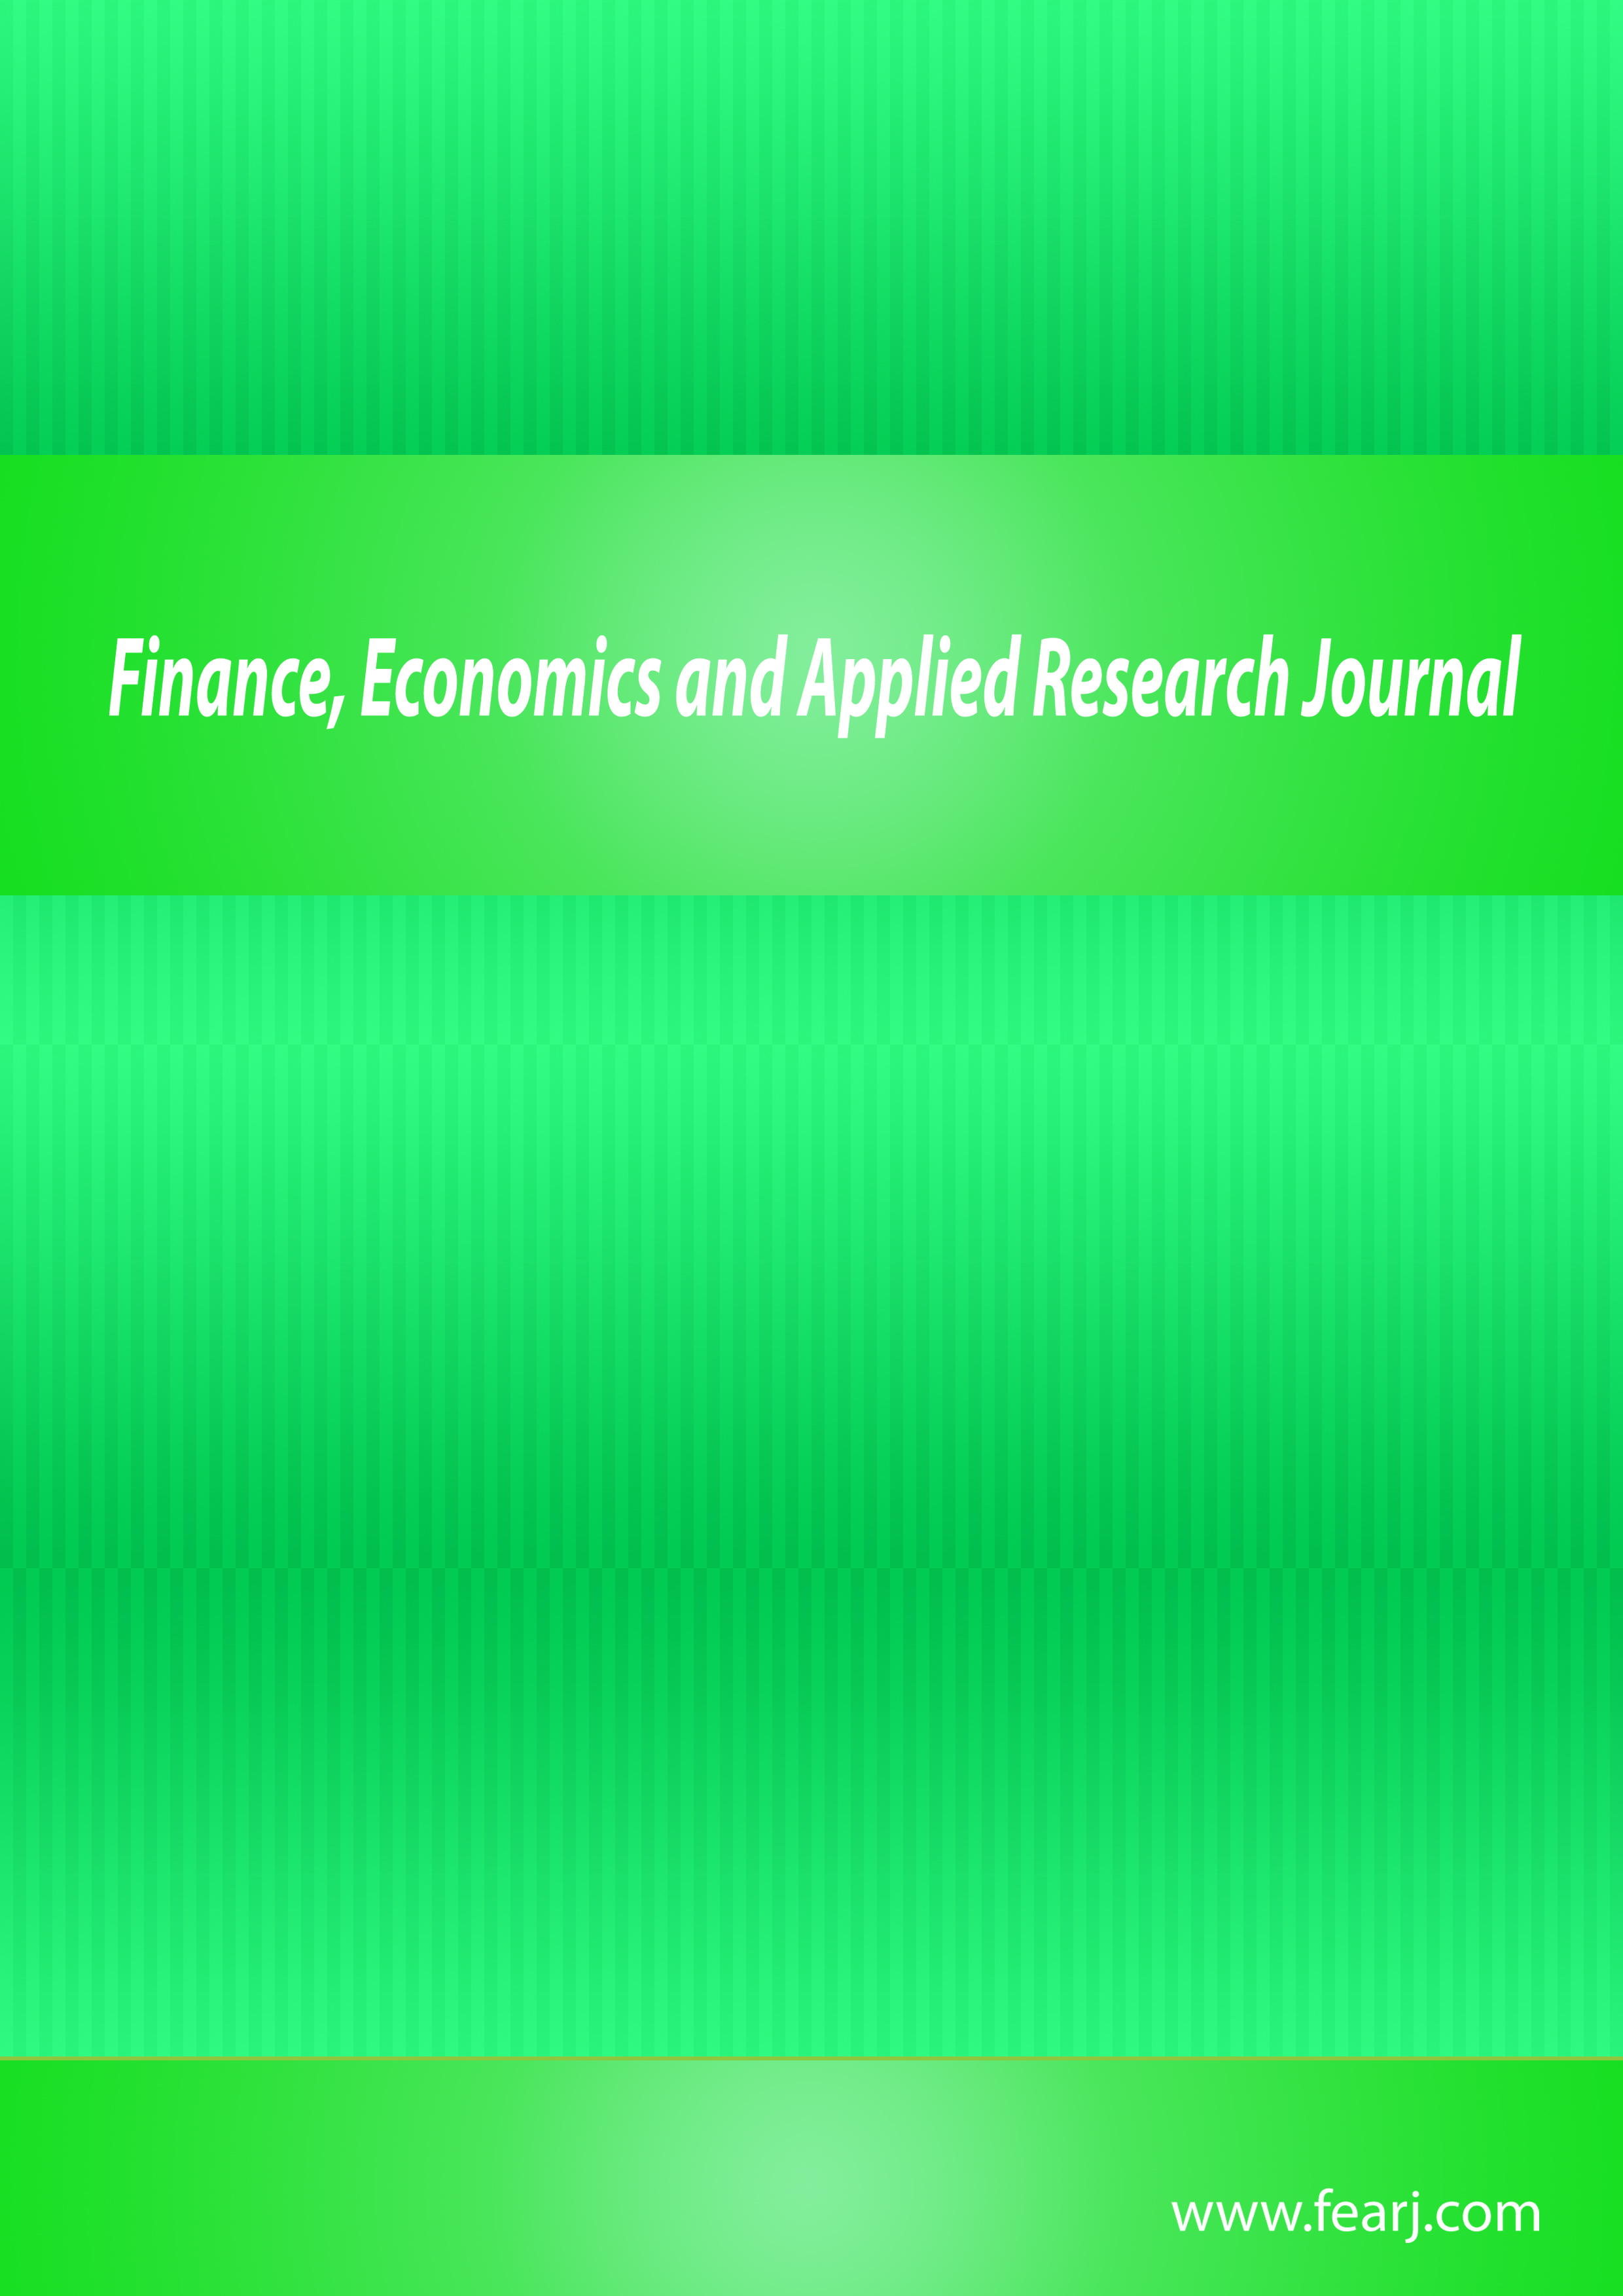 applied economics research bulletin peer-reviewed working paper series Nber working papers (national bureau of economics research) a collection of working papers in economics and finance they are intended to make results of nber research available to other economists in preliminary form to encourage discussion and suggestions for revision before publication.